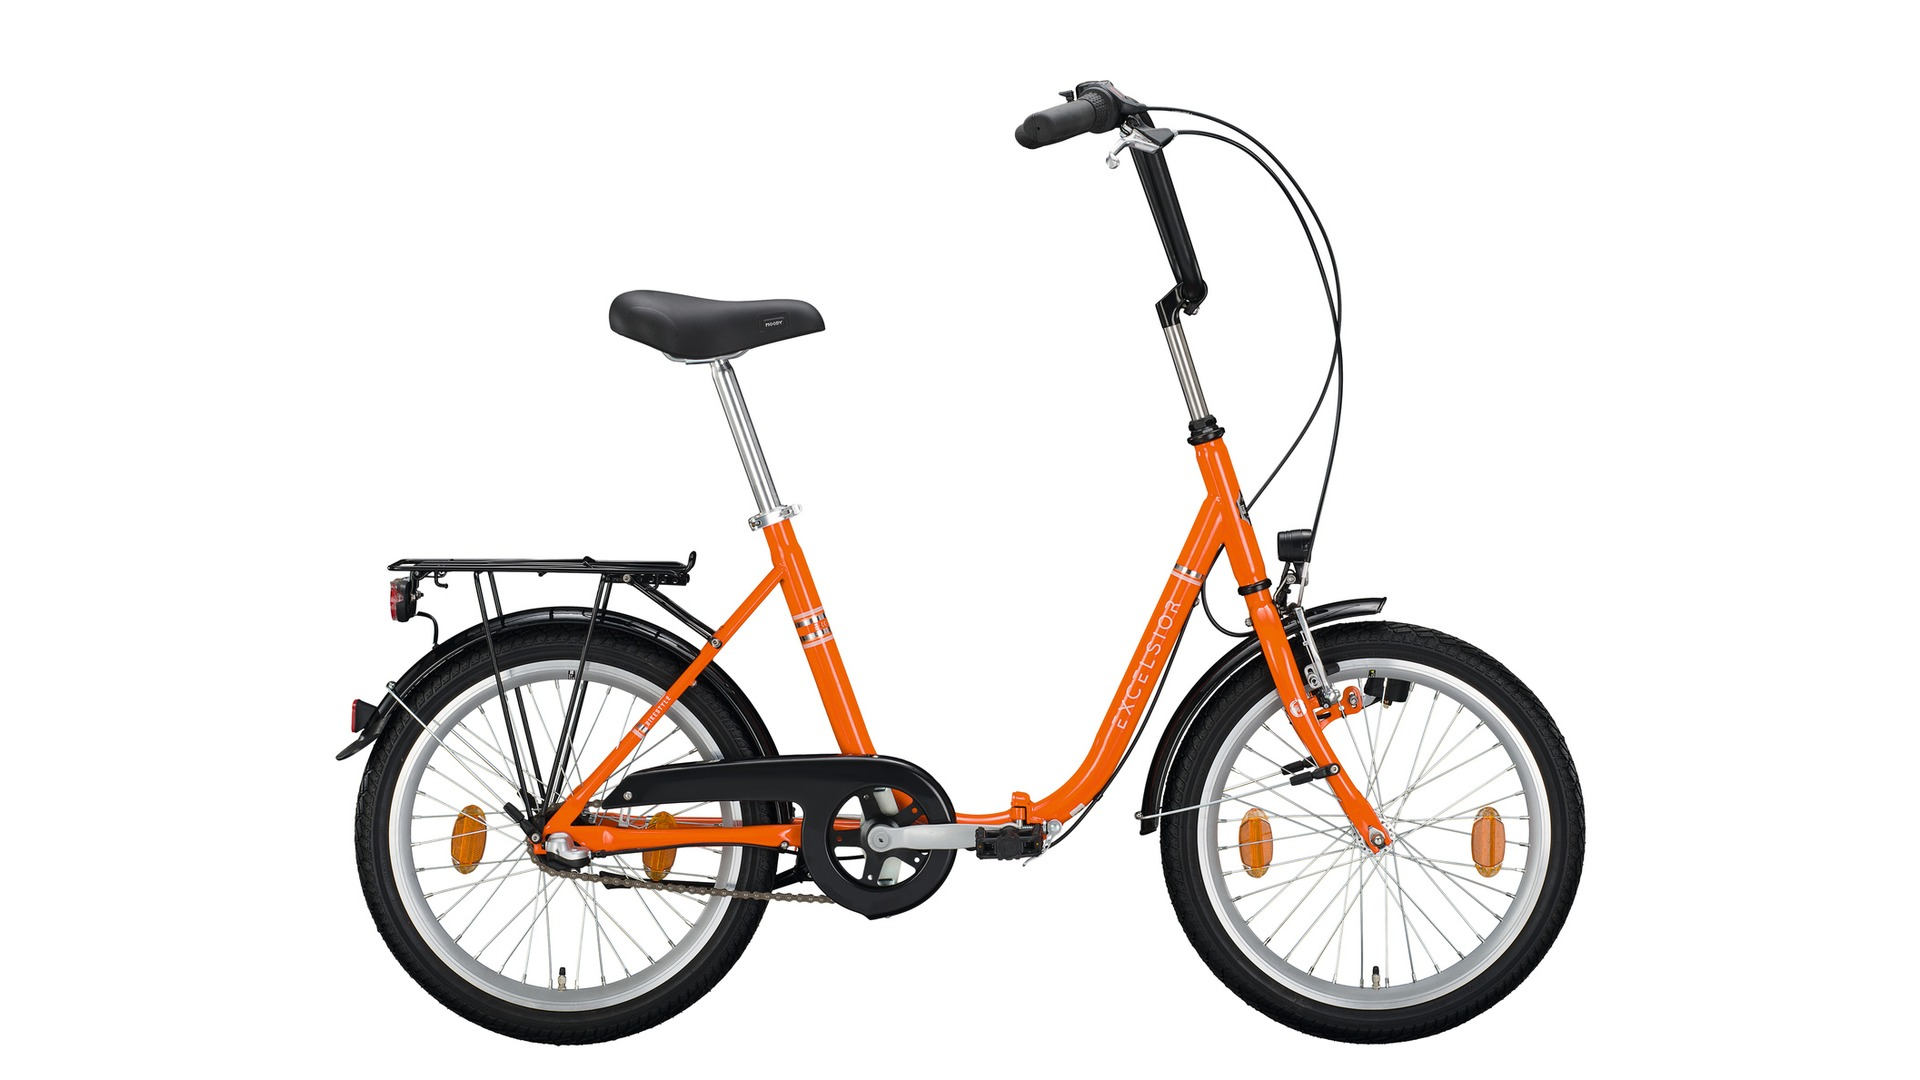 Excelsior Klapprad pure orange 2020 - 3Gg 24 Unisex -